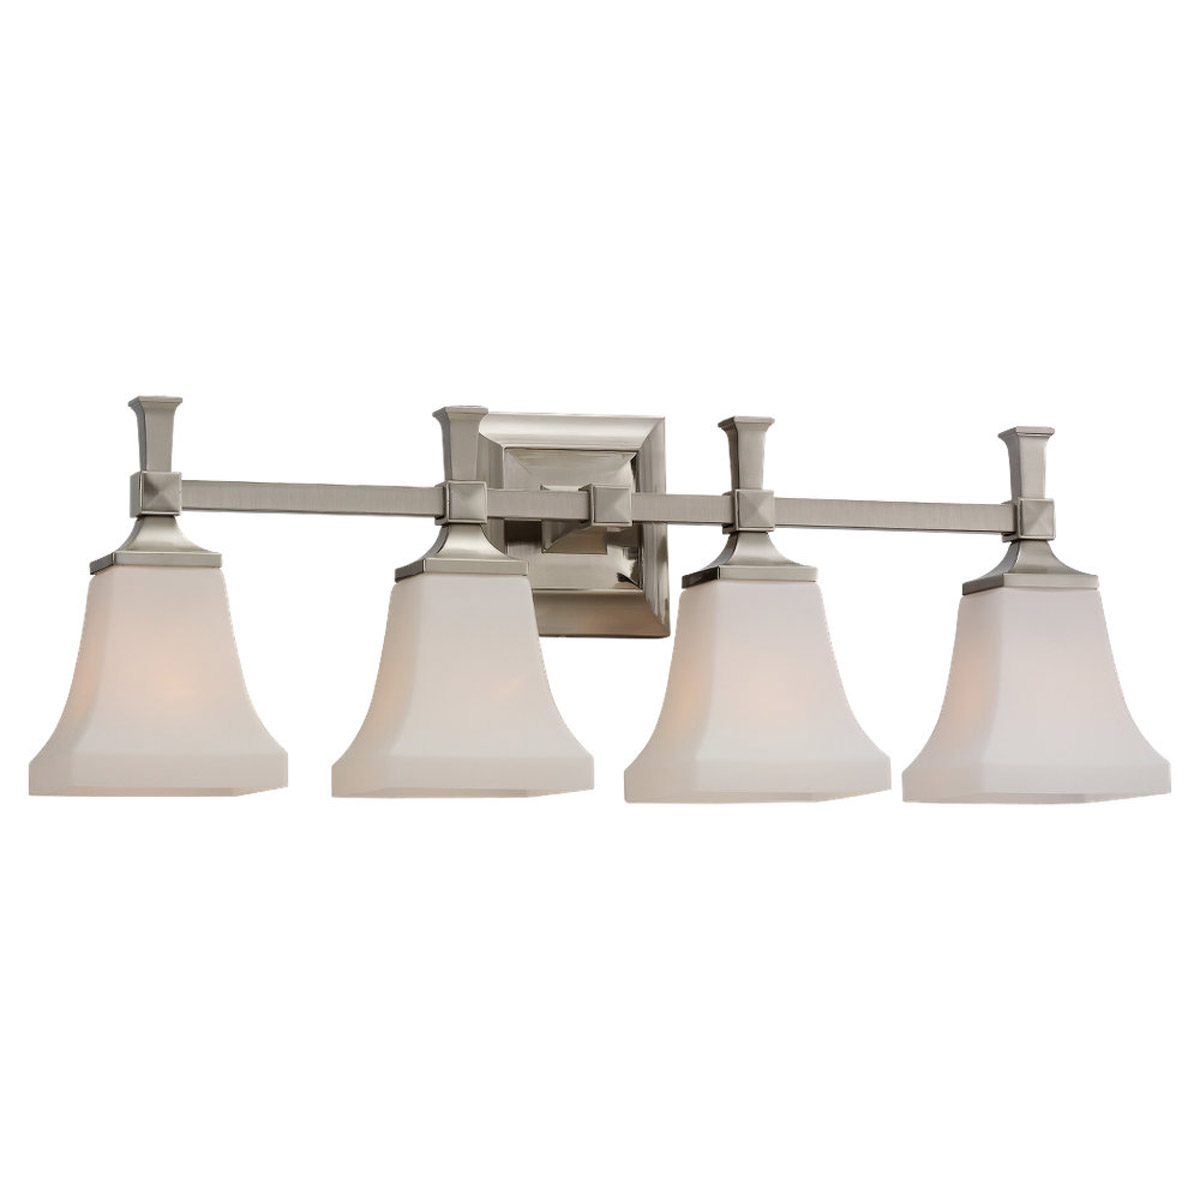 Sea Gull Lighting Melody 4 Light Bath Vanity in Brushed Nickel 44708-962